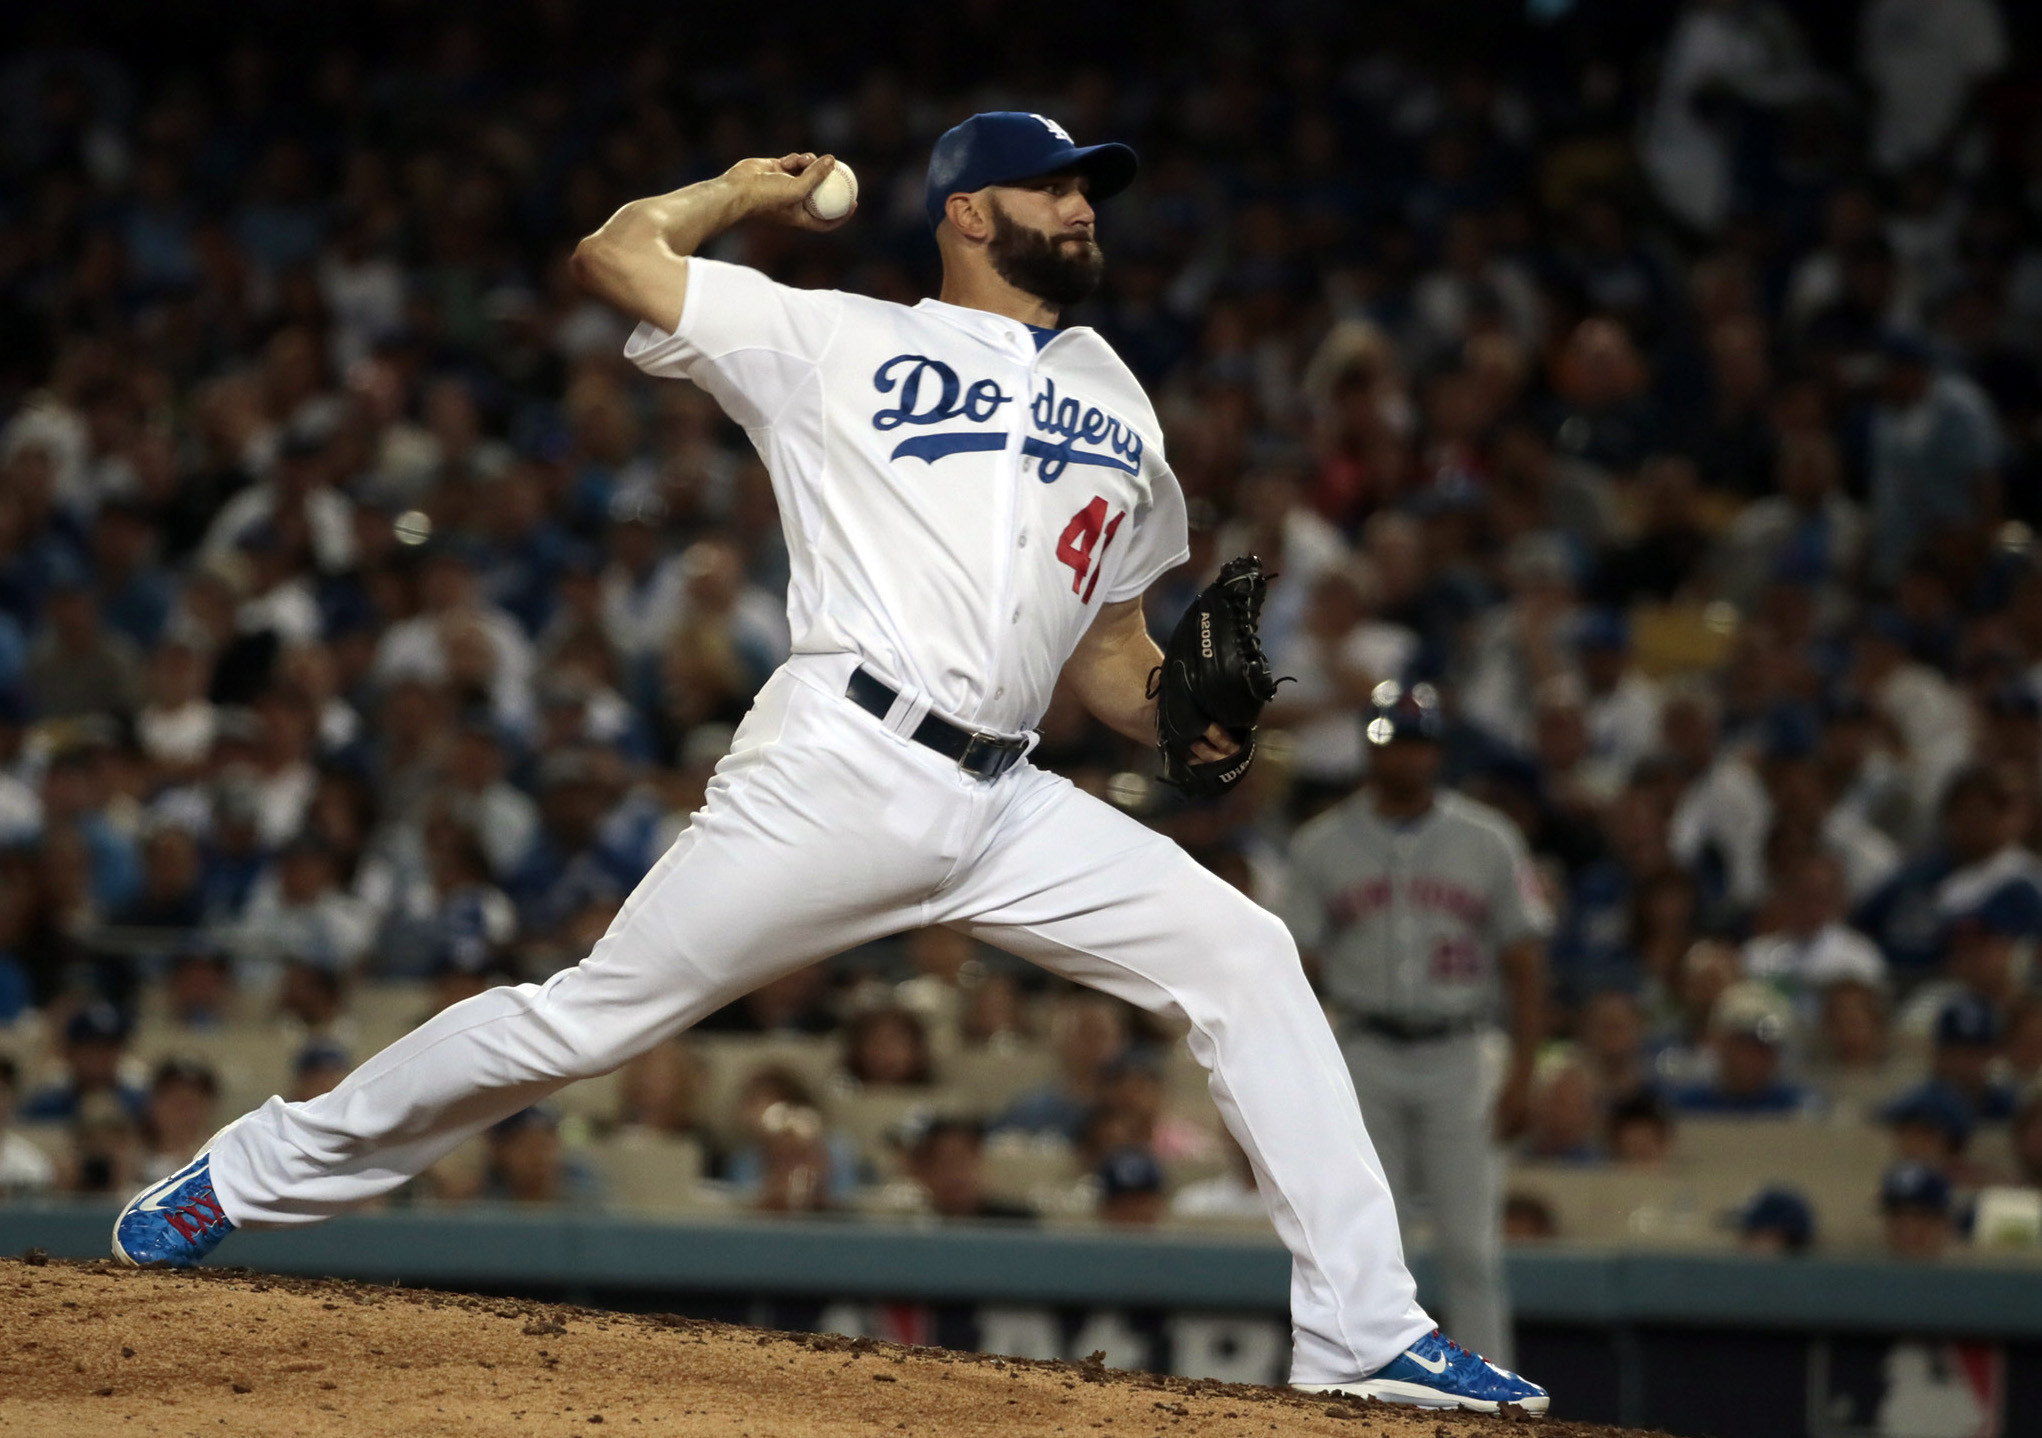 La-sp-dodgers-hatcher-van-slyke-20161201